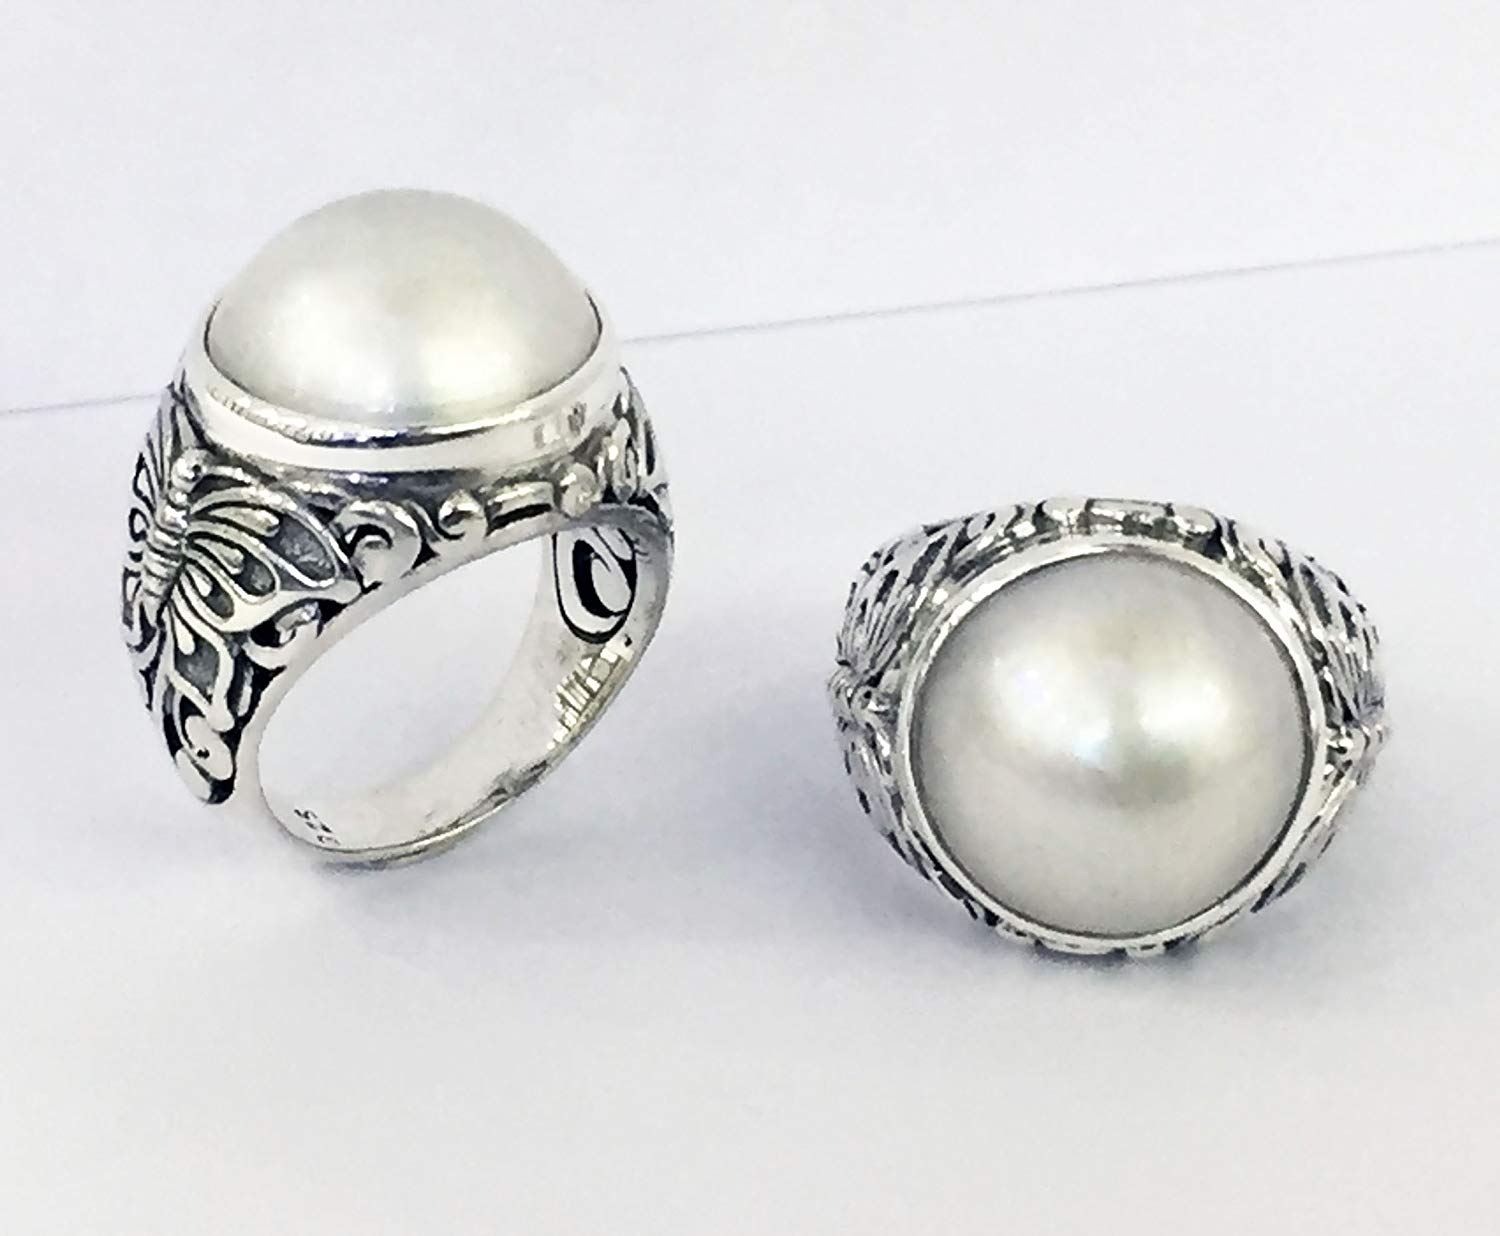 bali carving ring with cultured white mabe pearl, handmade 925 sterling silver ring with pearl, pearl ring, mabe pearl ring, silver ring with pearl,